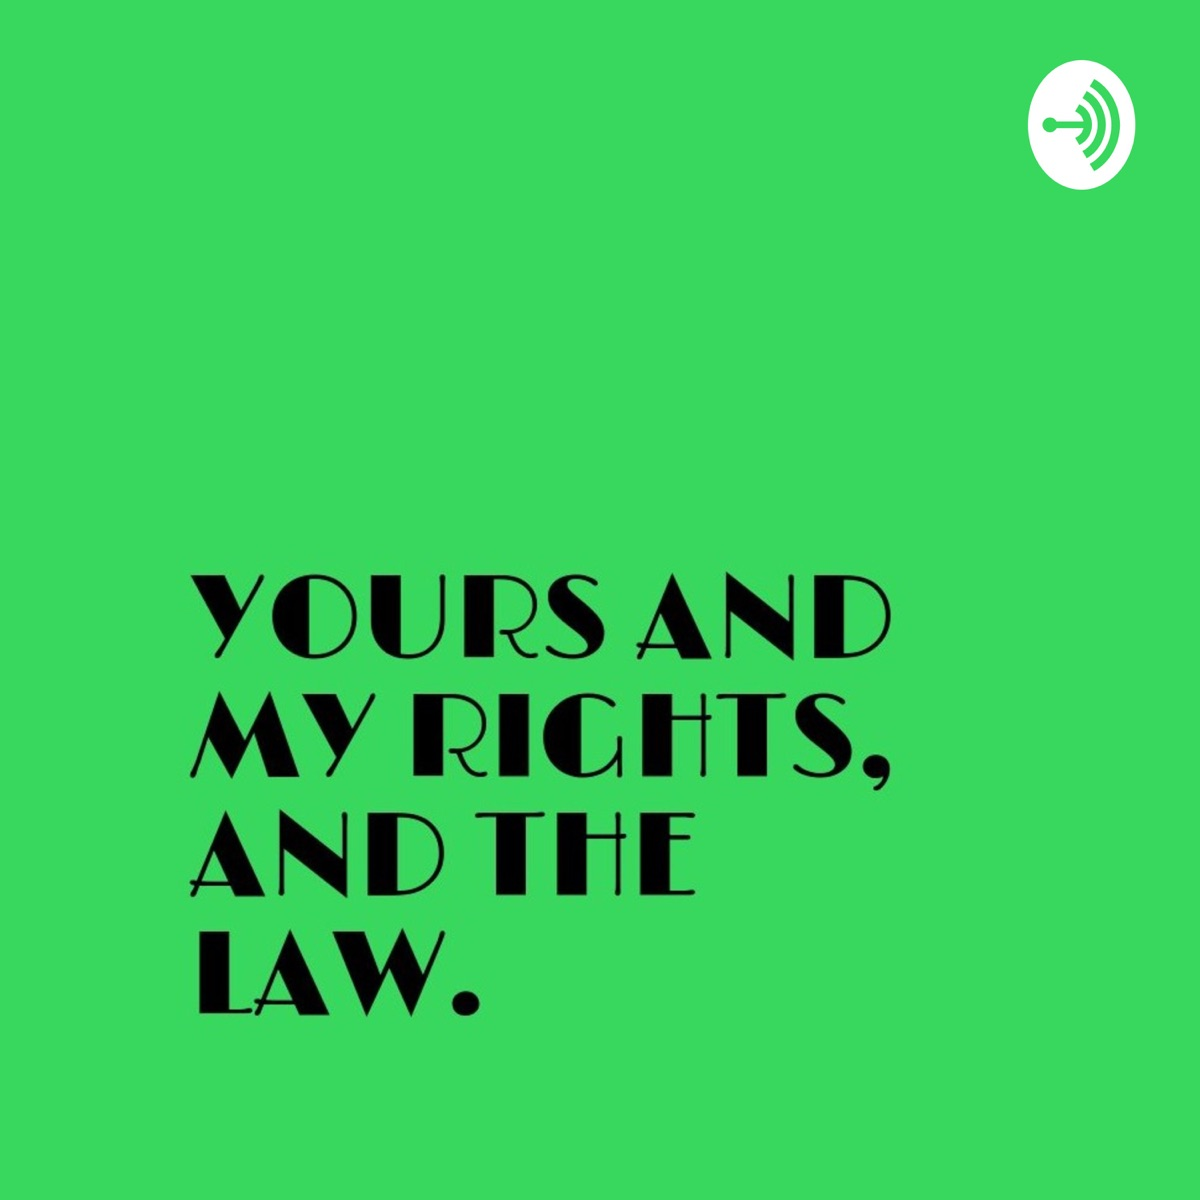 YOURS AND MY RIGHTS, AND THE LAW